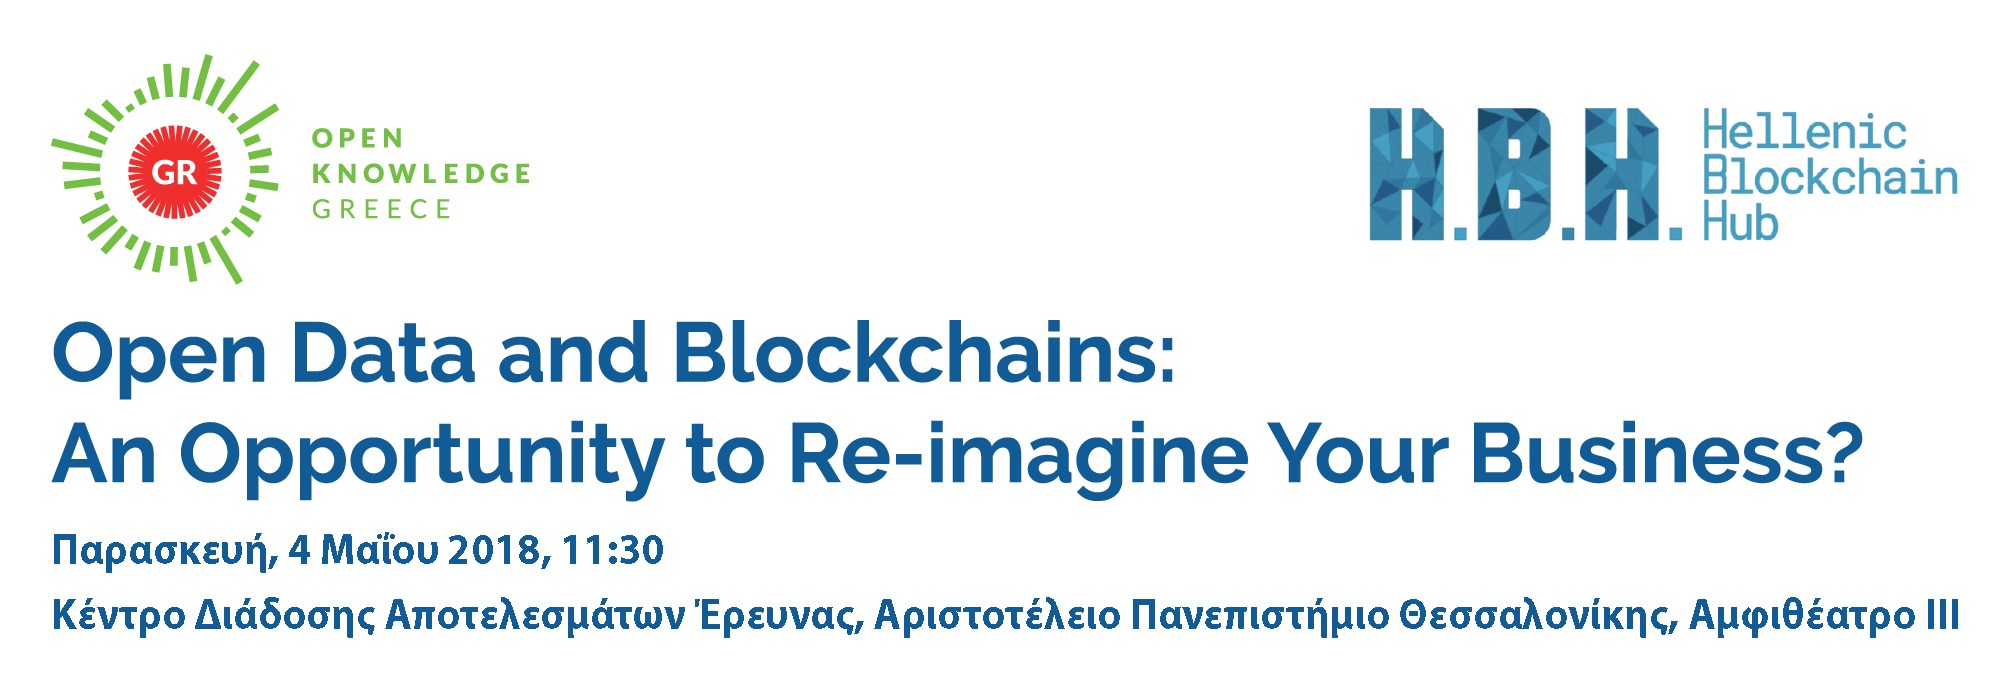 Open Data and Blockchains:  An Opportunity to Re-imagine Your Business?